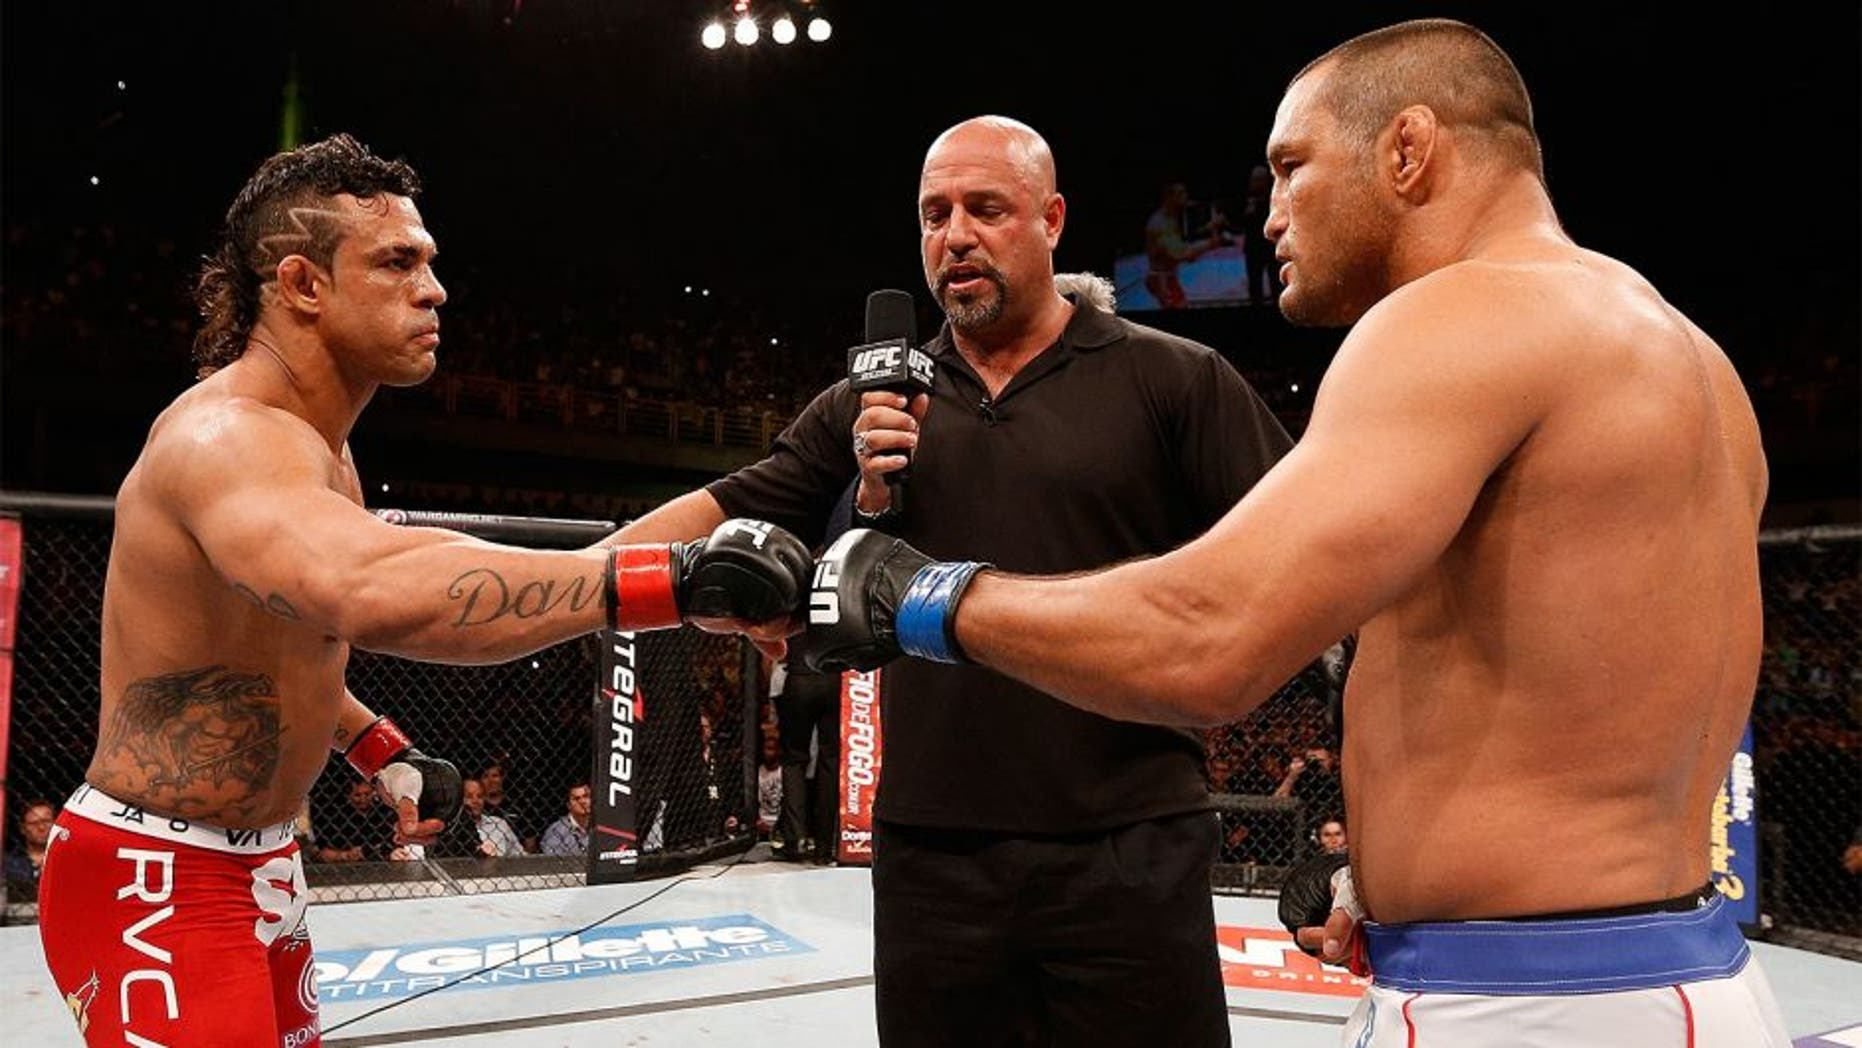 GOIANIA, BRAZIL - NOVEMBER 09: Opponents Vitor Belfort (L) and Dan Henderson (R) face off before their light heavyweight bout during the UFC event at Arena Goiania on November 9, 2013 in Goiania, Brazil. (Photo by Josh Hedges/Zuffa LLC/Zuffa LLC via Getty Images)